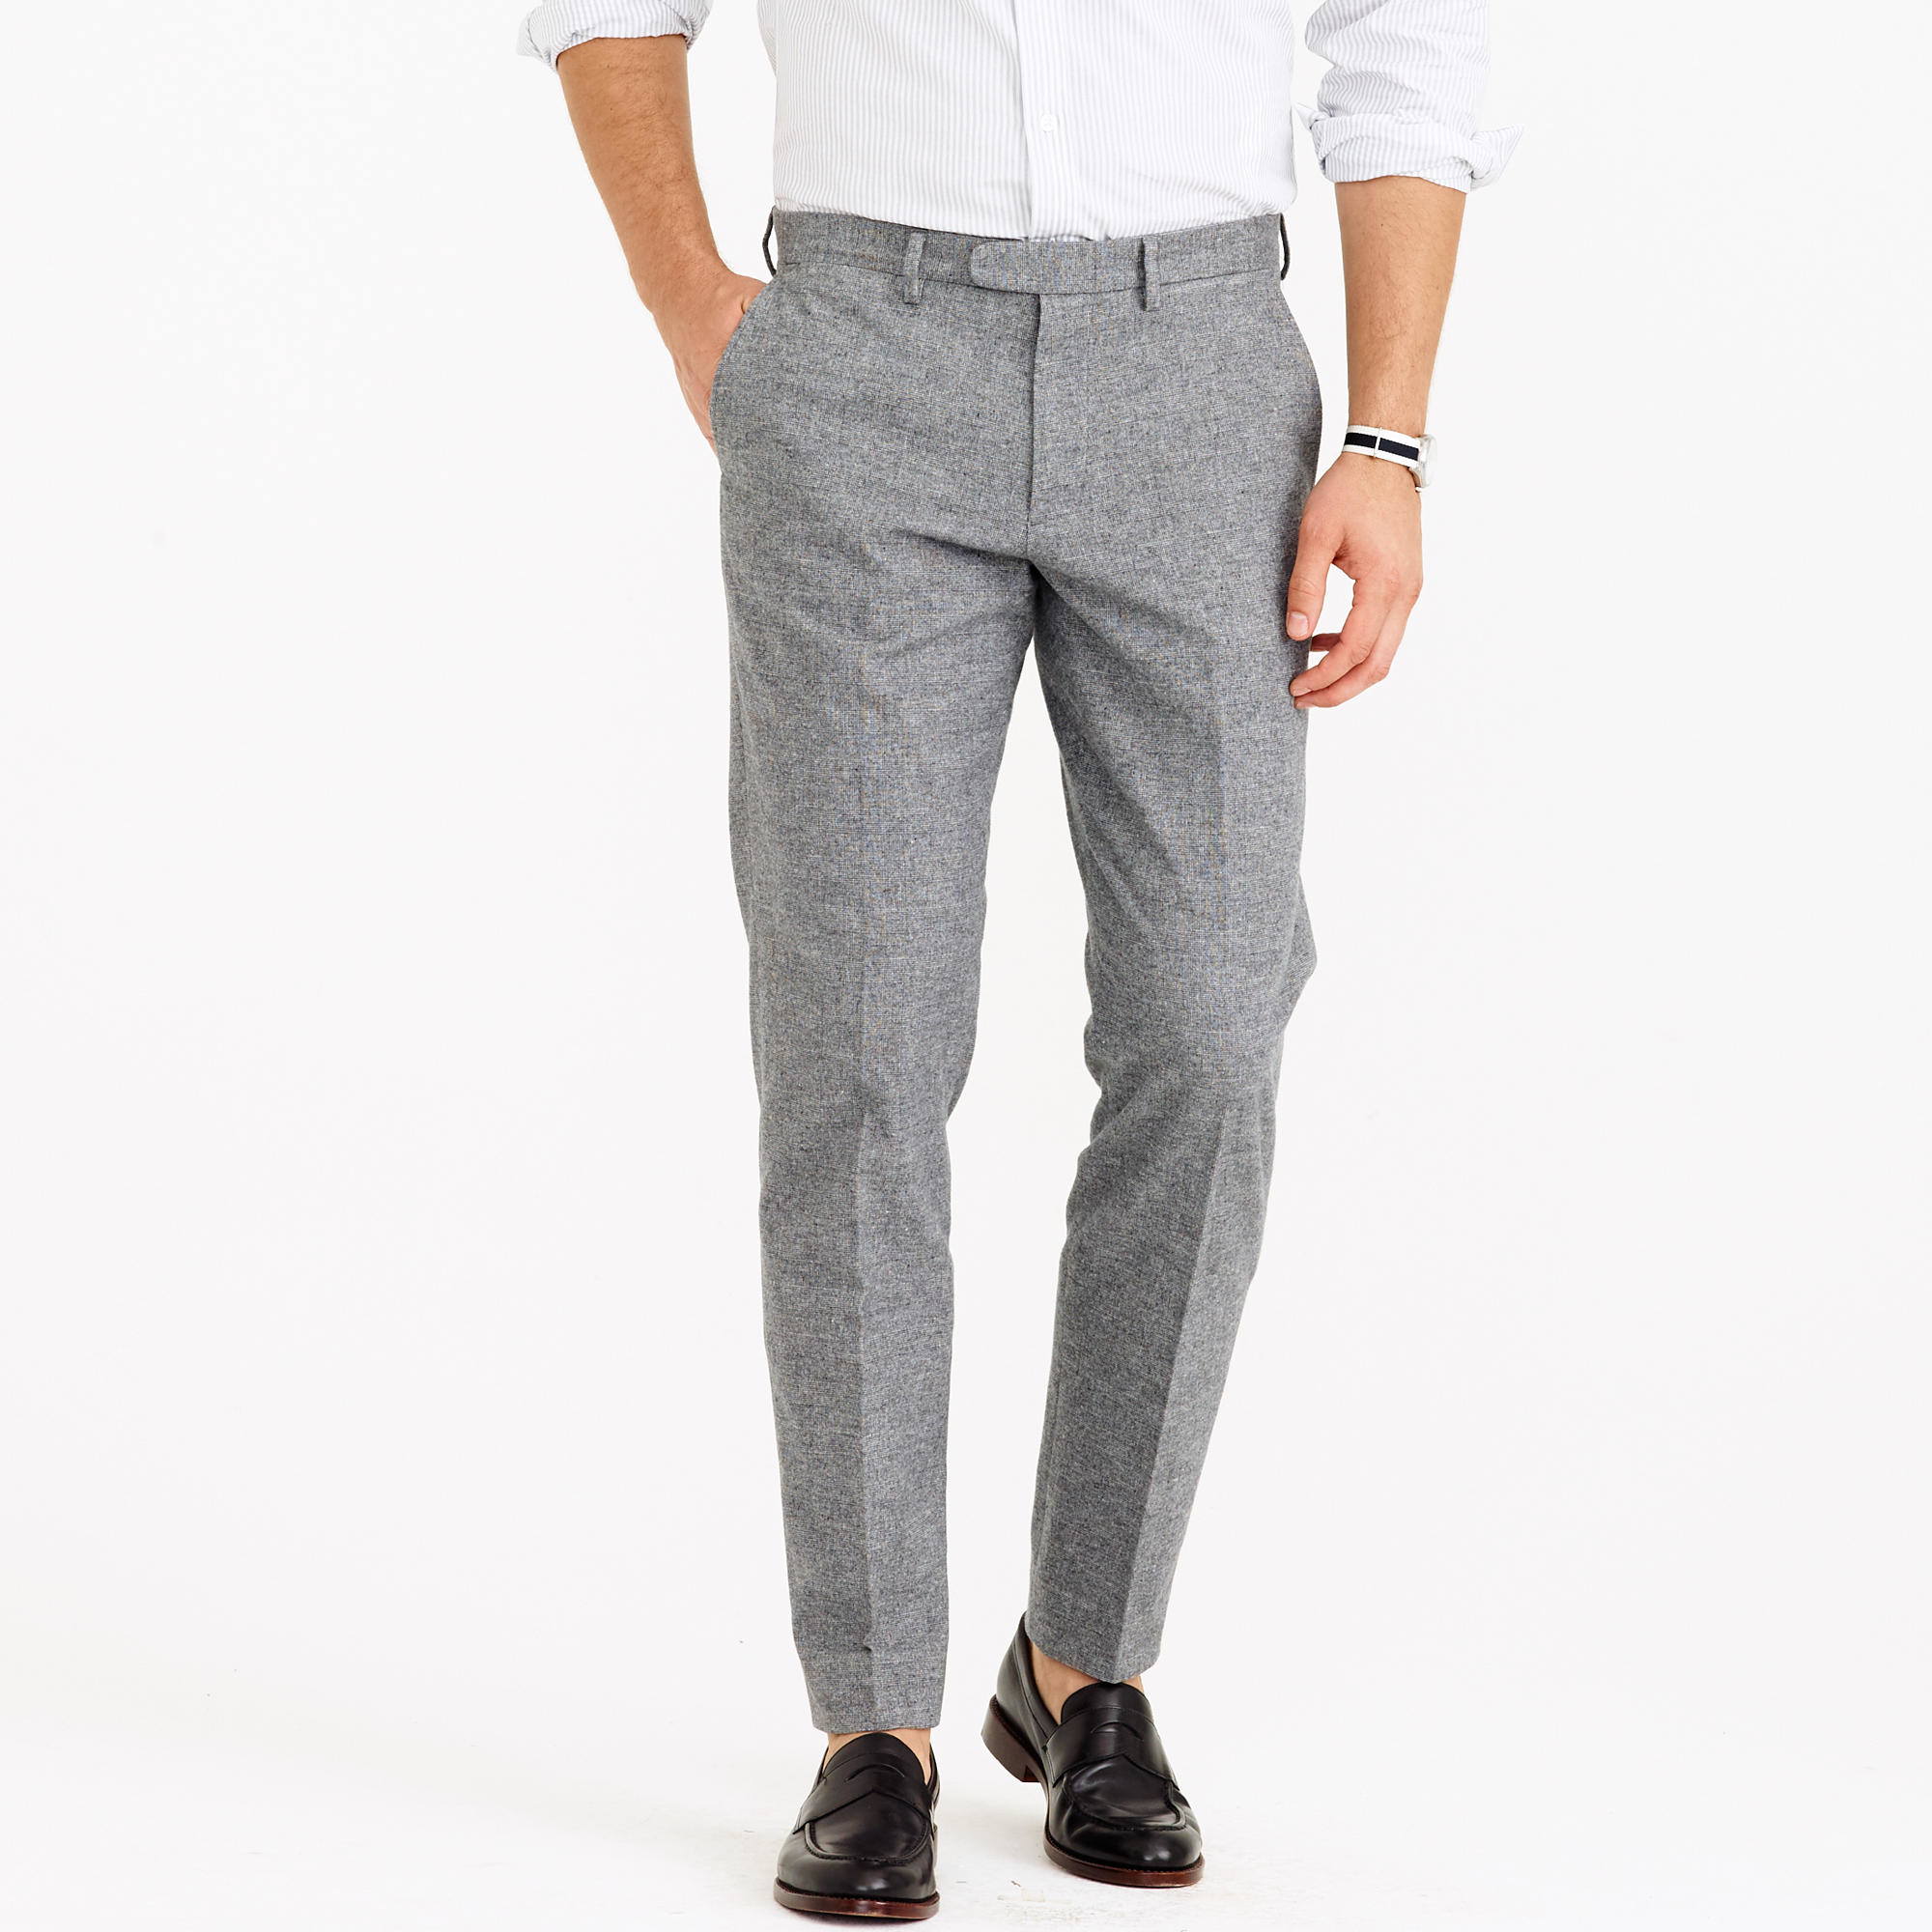 5b64c128ee1 Lyst - J.Crew Bowery Slim Pant In Brushed Glen Plaid in Gray for Men